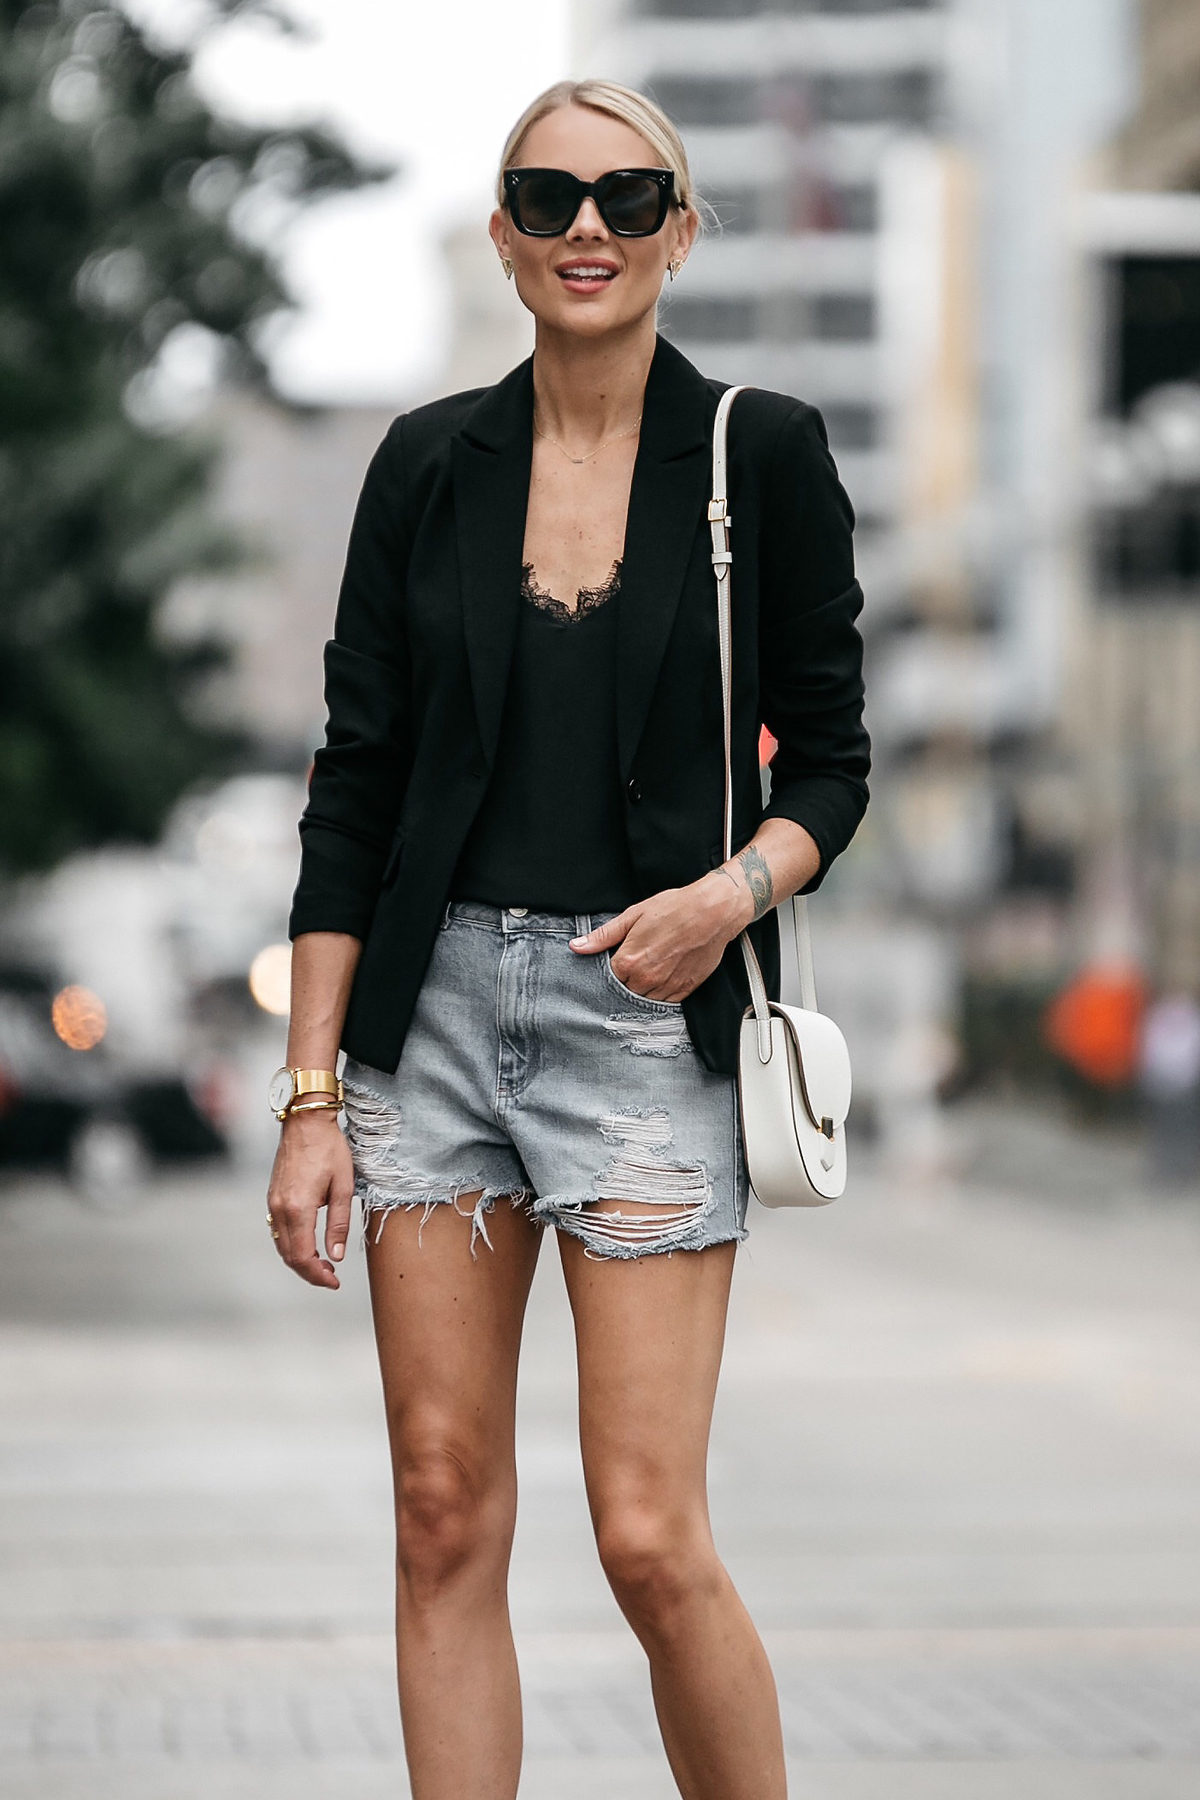 Blonde Woman Wearing Nordstrom Black Blazer Anine Bing Black Lace Cami Topshop Denim Cutoff Shorts Outfit Celine White Trotteur Handbag Street Style Dallas Blogger Fashion Blogger